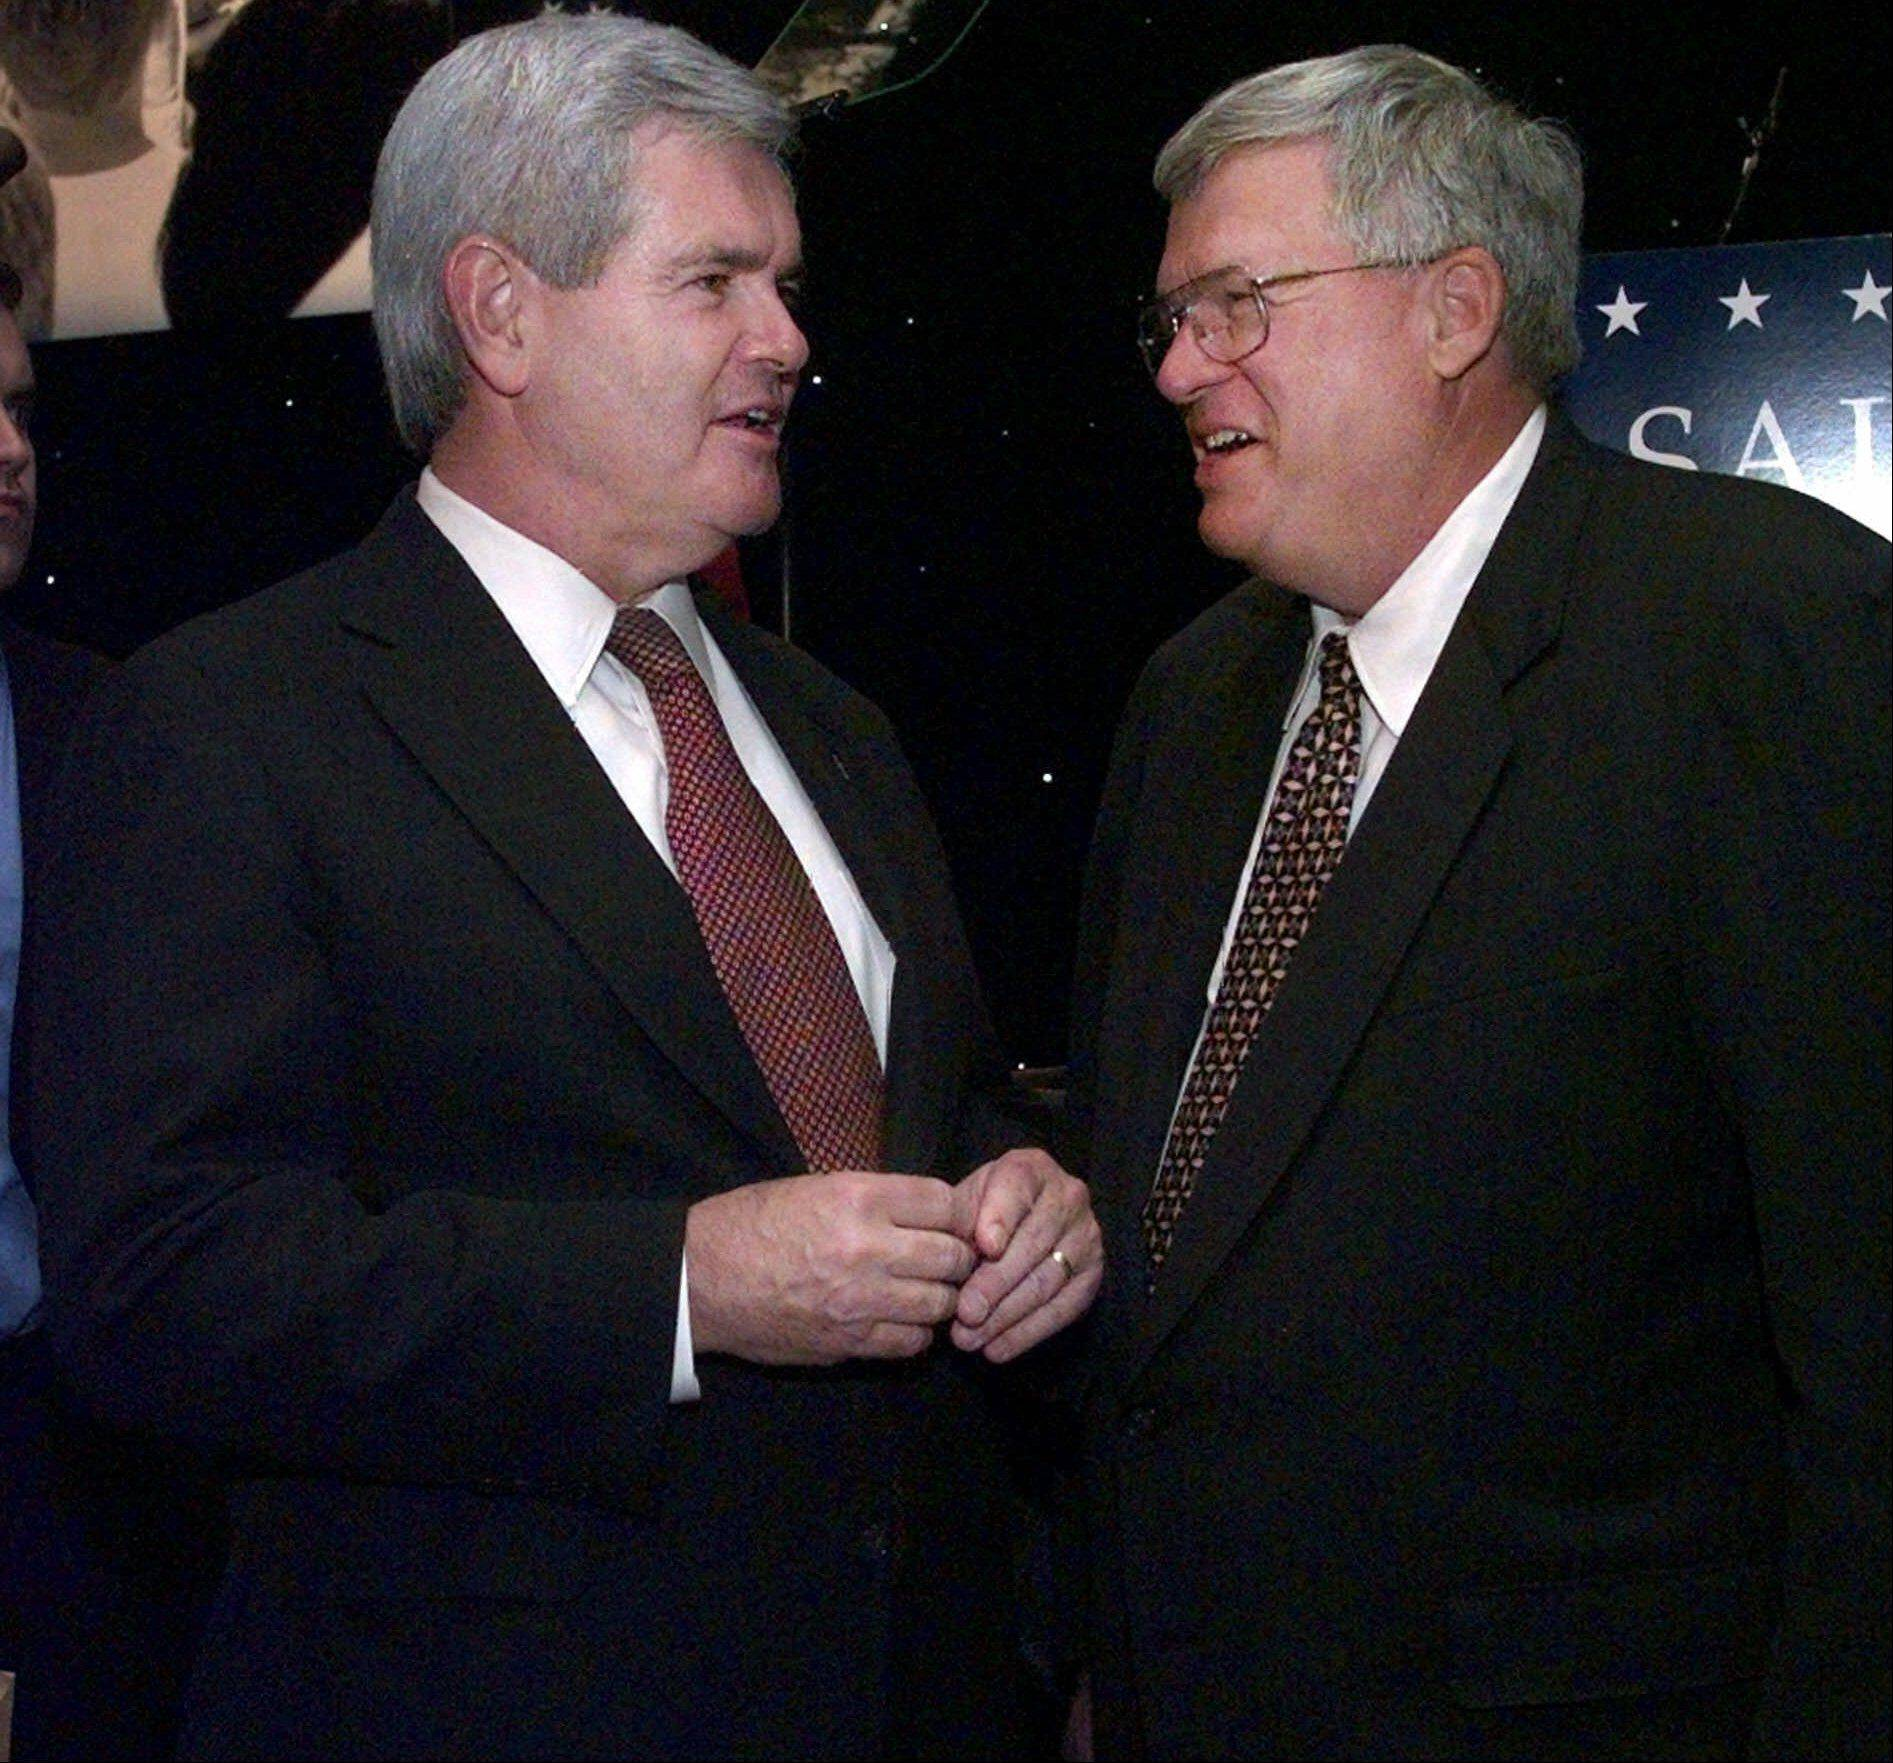 Why Hastert backs Romney over Gingrich